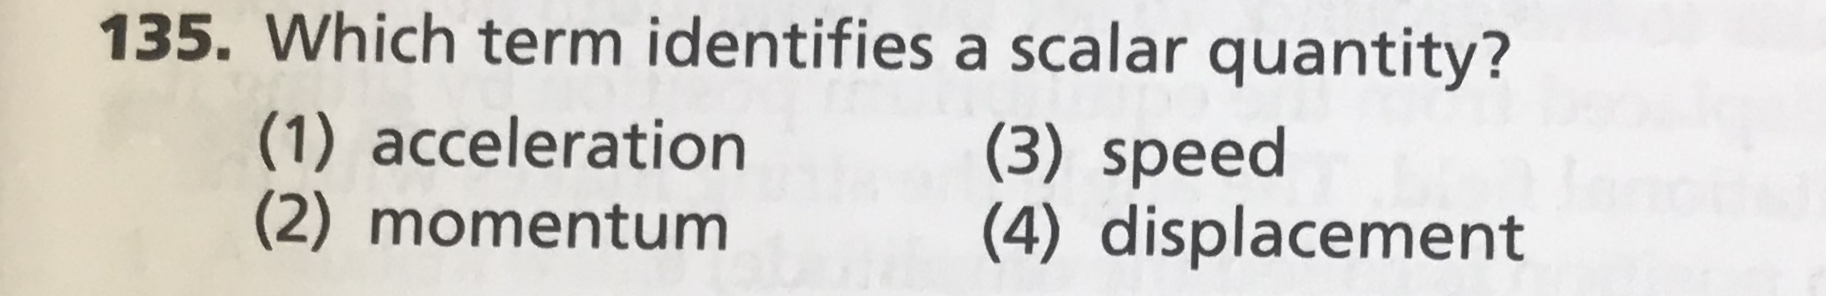 135. Which term identifies a scalar quantity? (1) acceleration (2) momentum (3) speed (4) displacement